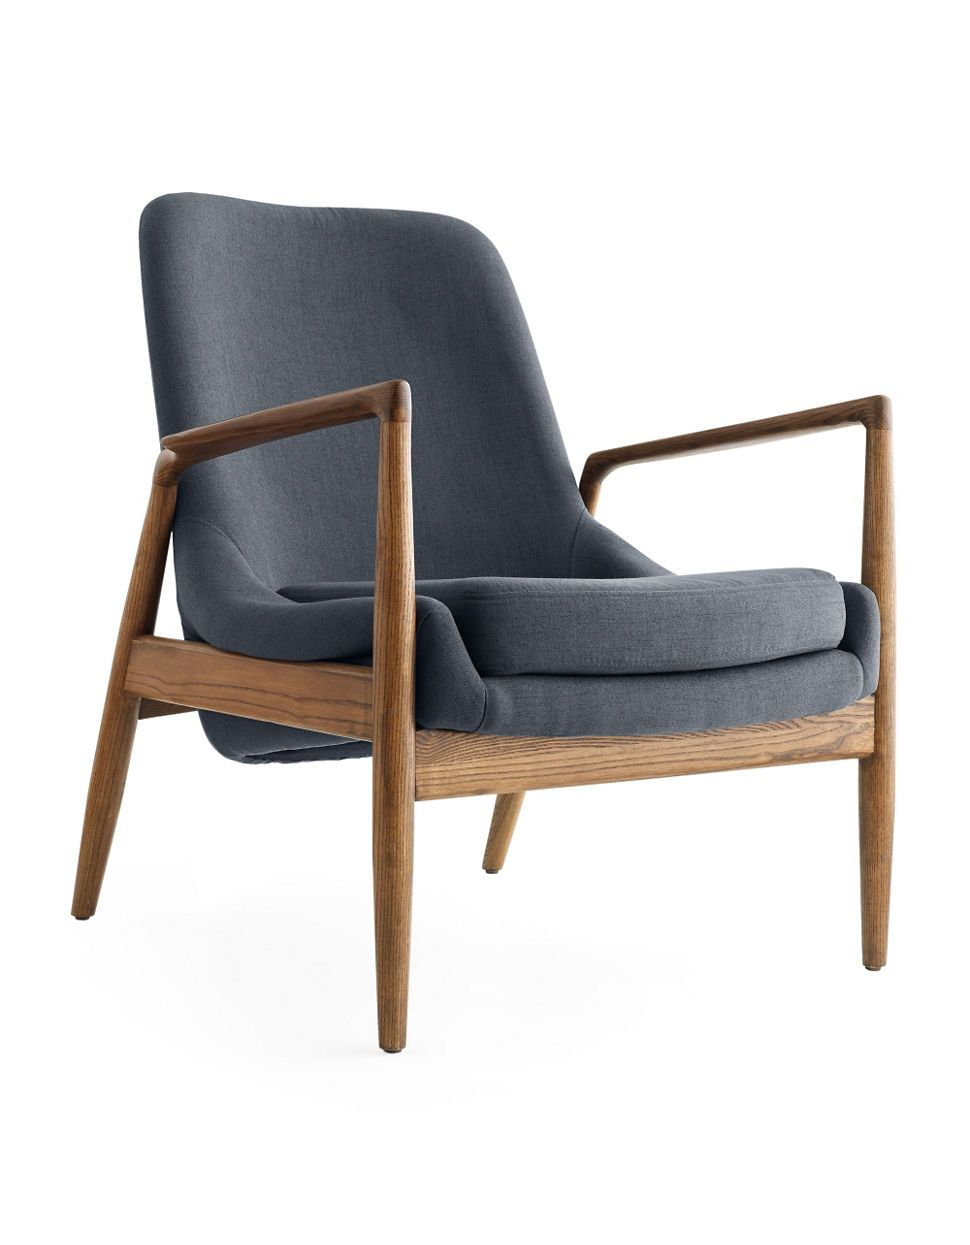 Norway Occasional Chair In 2019 Accent Chairs ソファ 椅子 家具